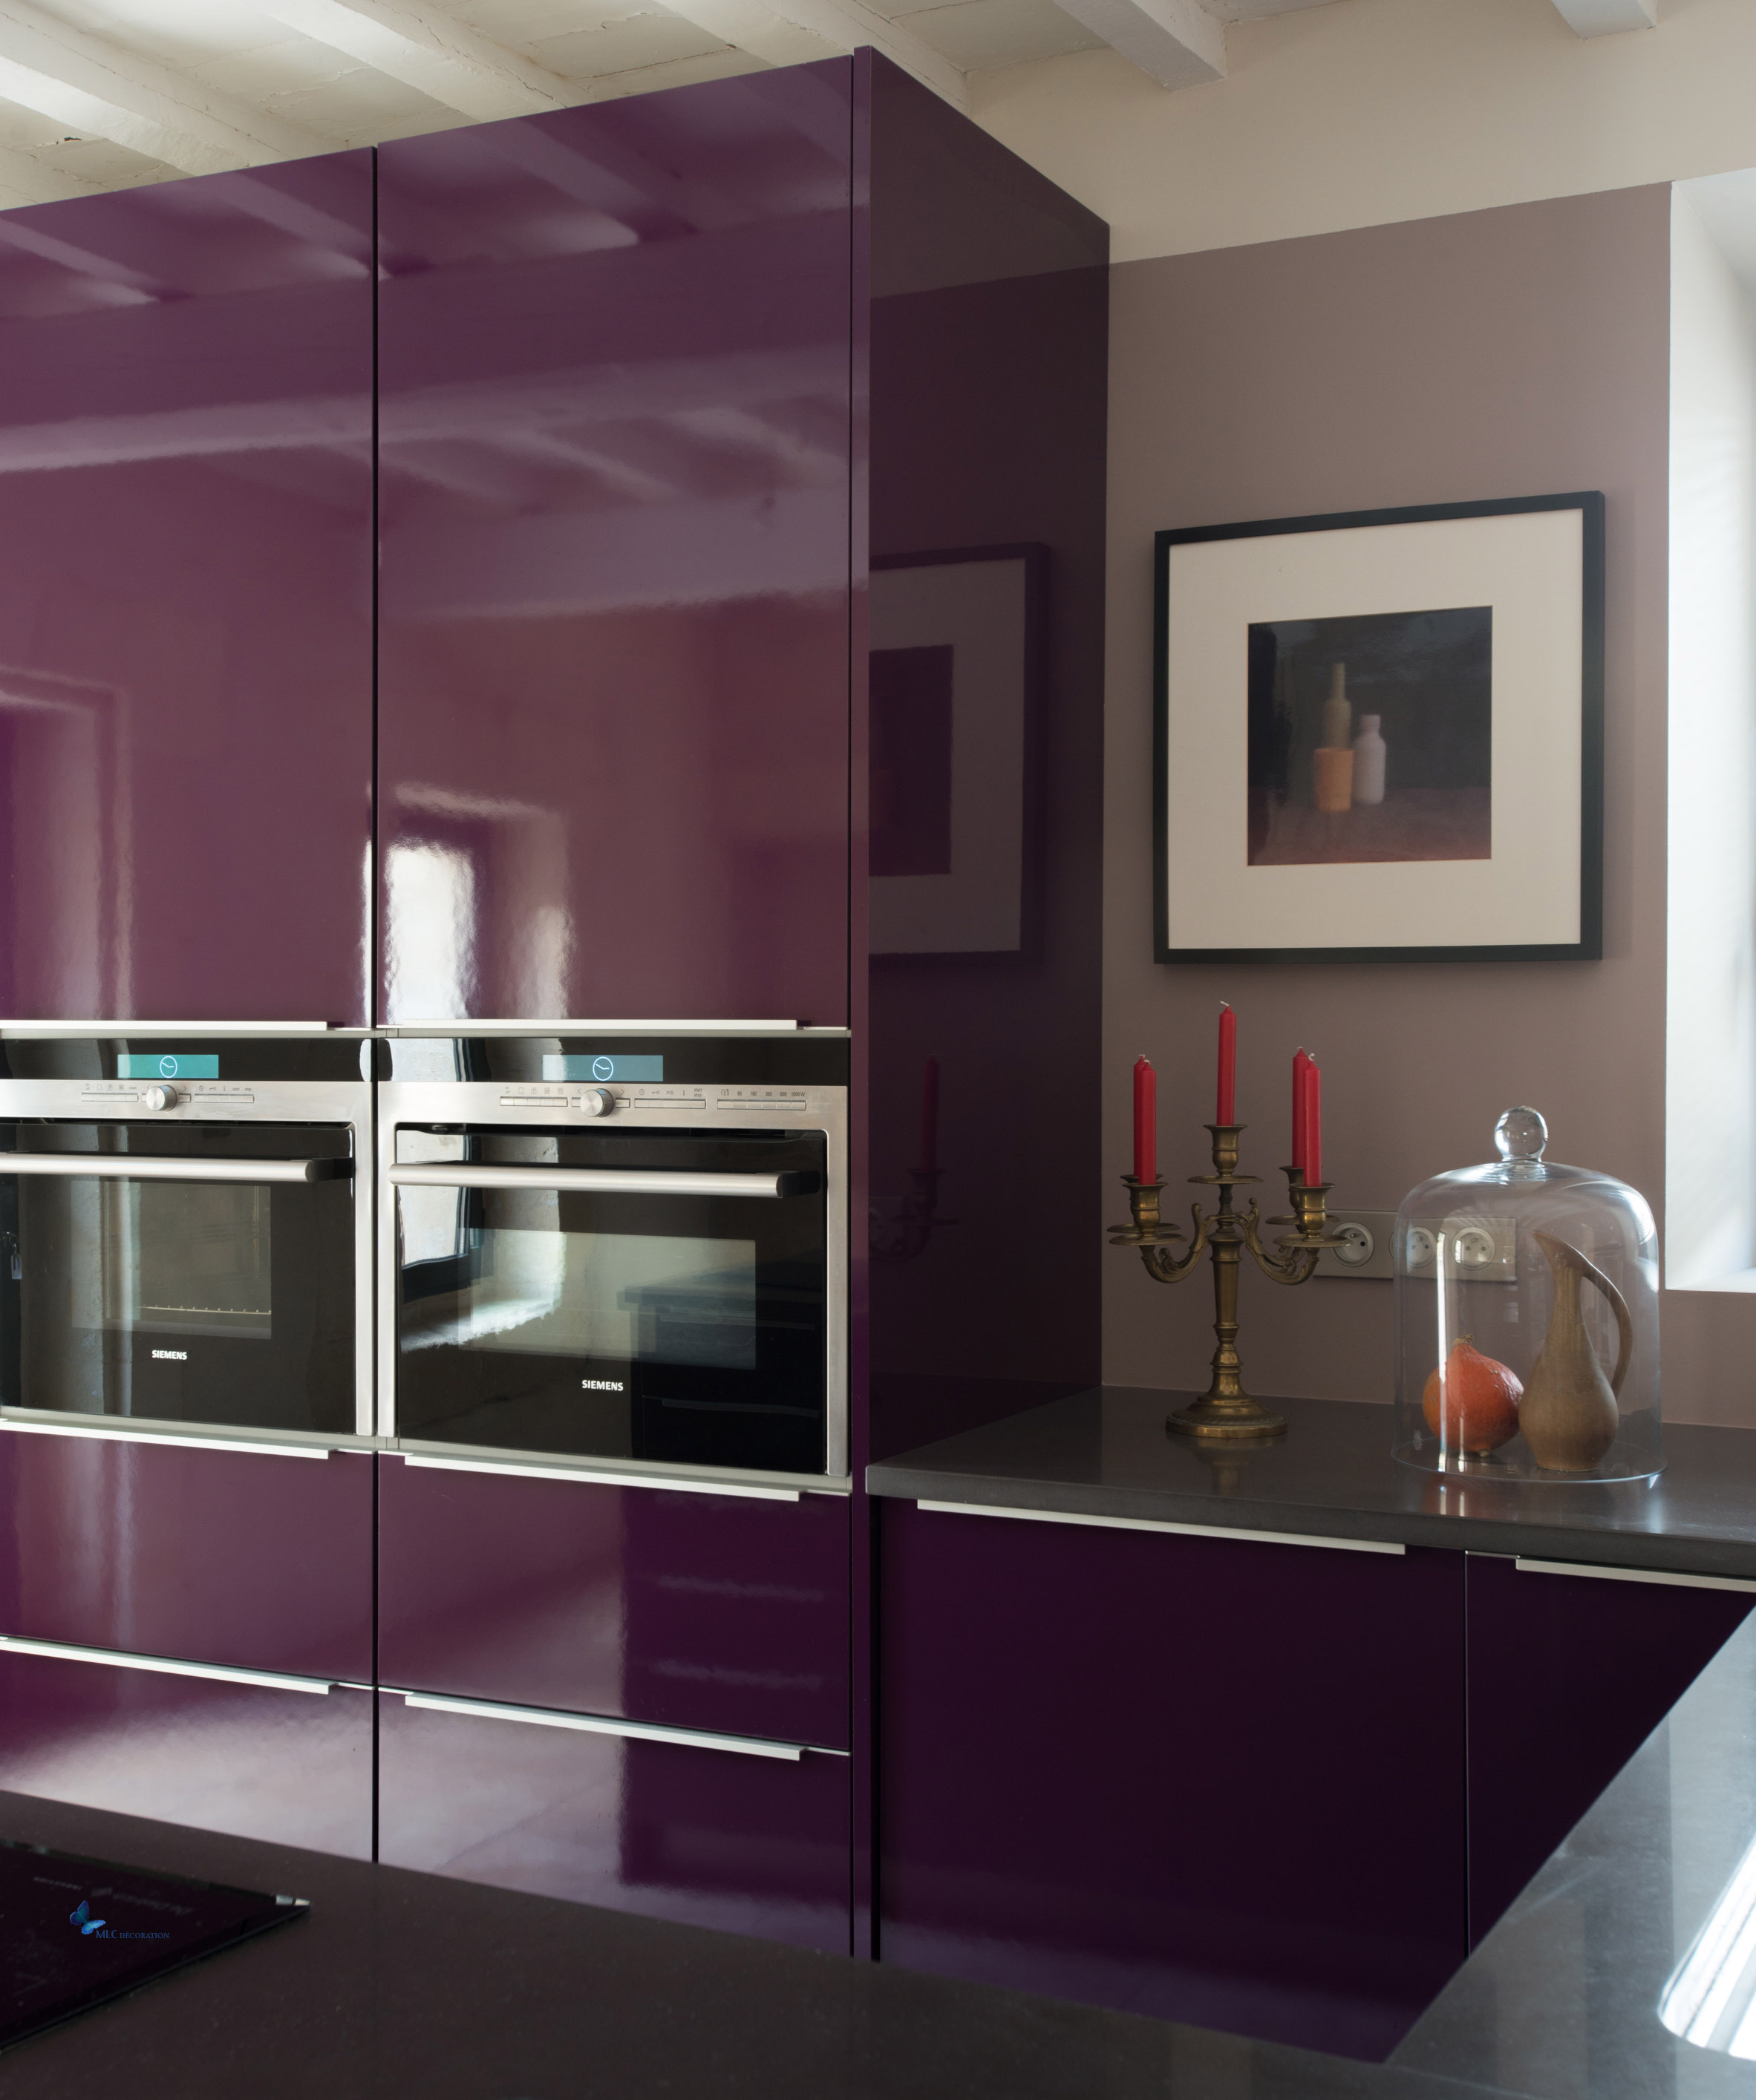 cuisine couleur aubergine archives le blog d co de mlc. Black Bedroom Furniture Sets. Home Design Ideas